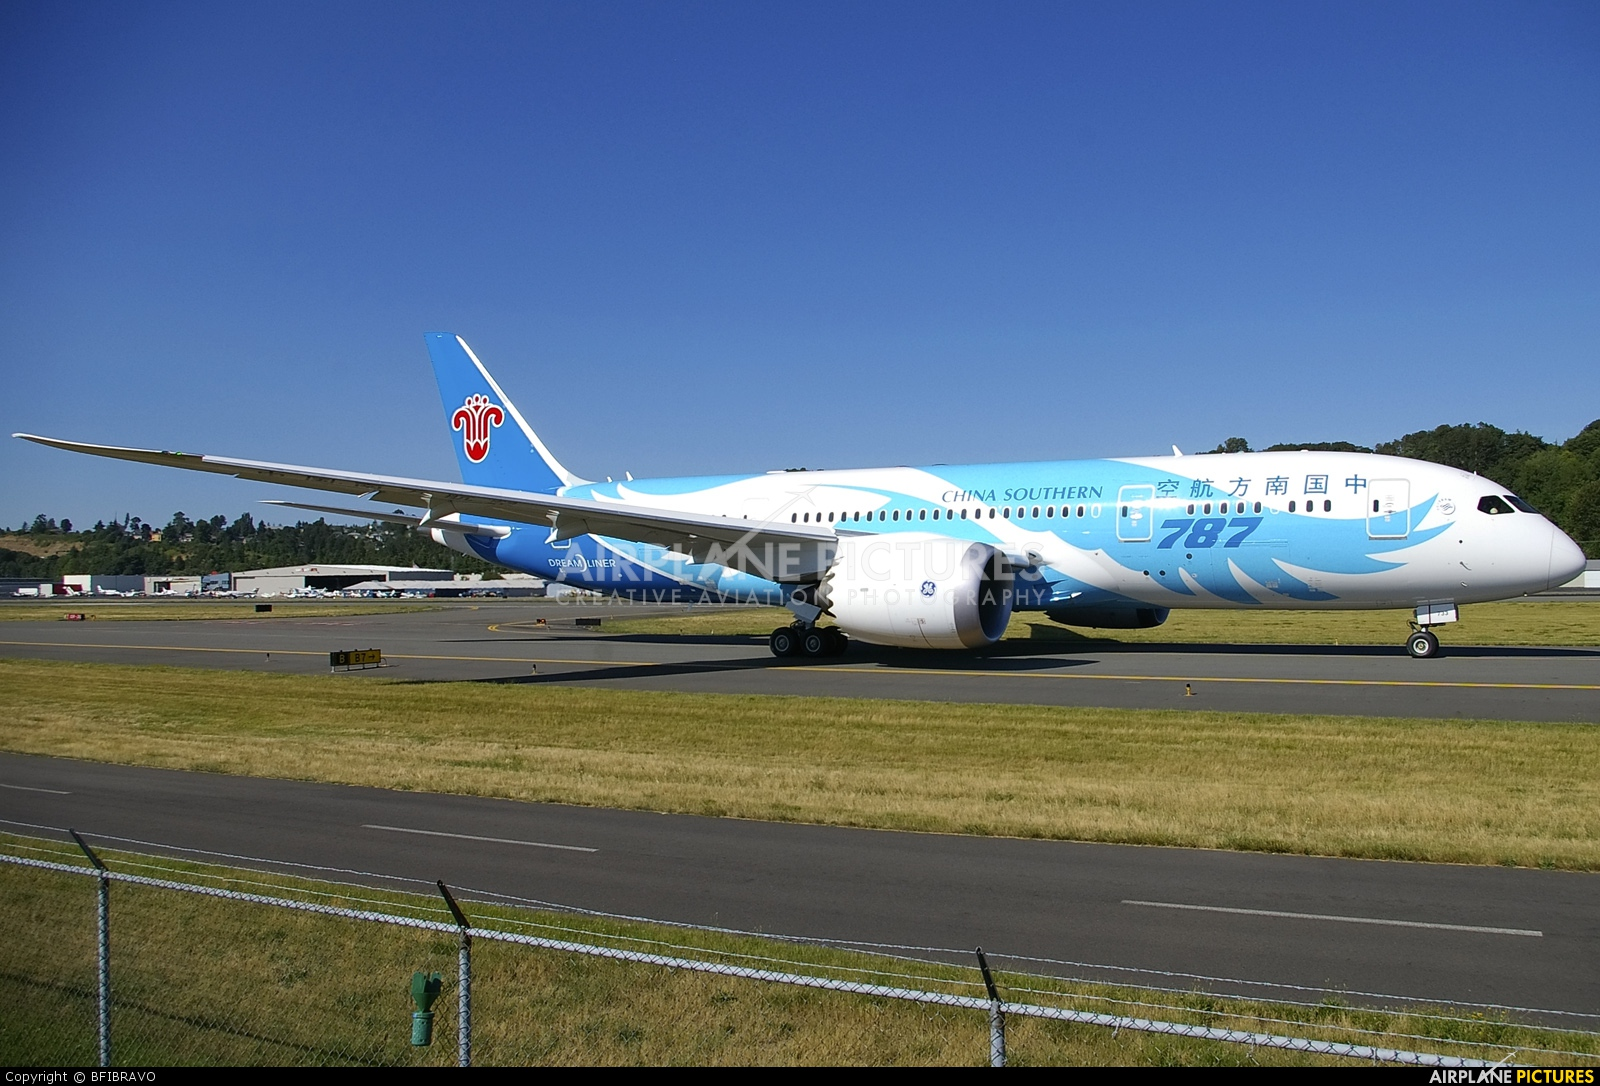 China Southern Airlines B-2733 aircraft at Seattle - Boeing Field / King County Intl